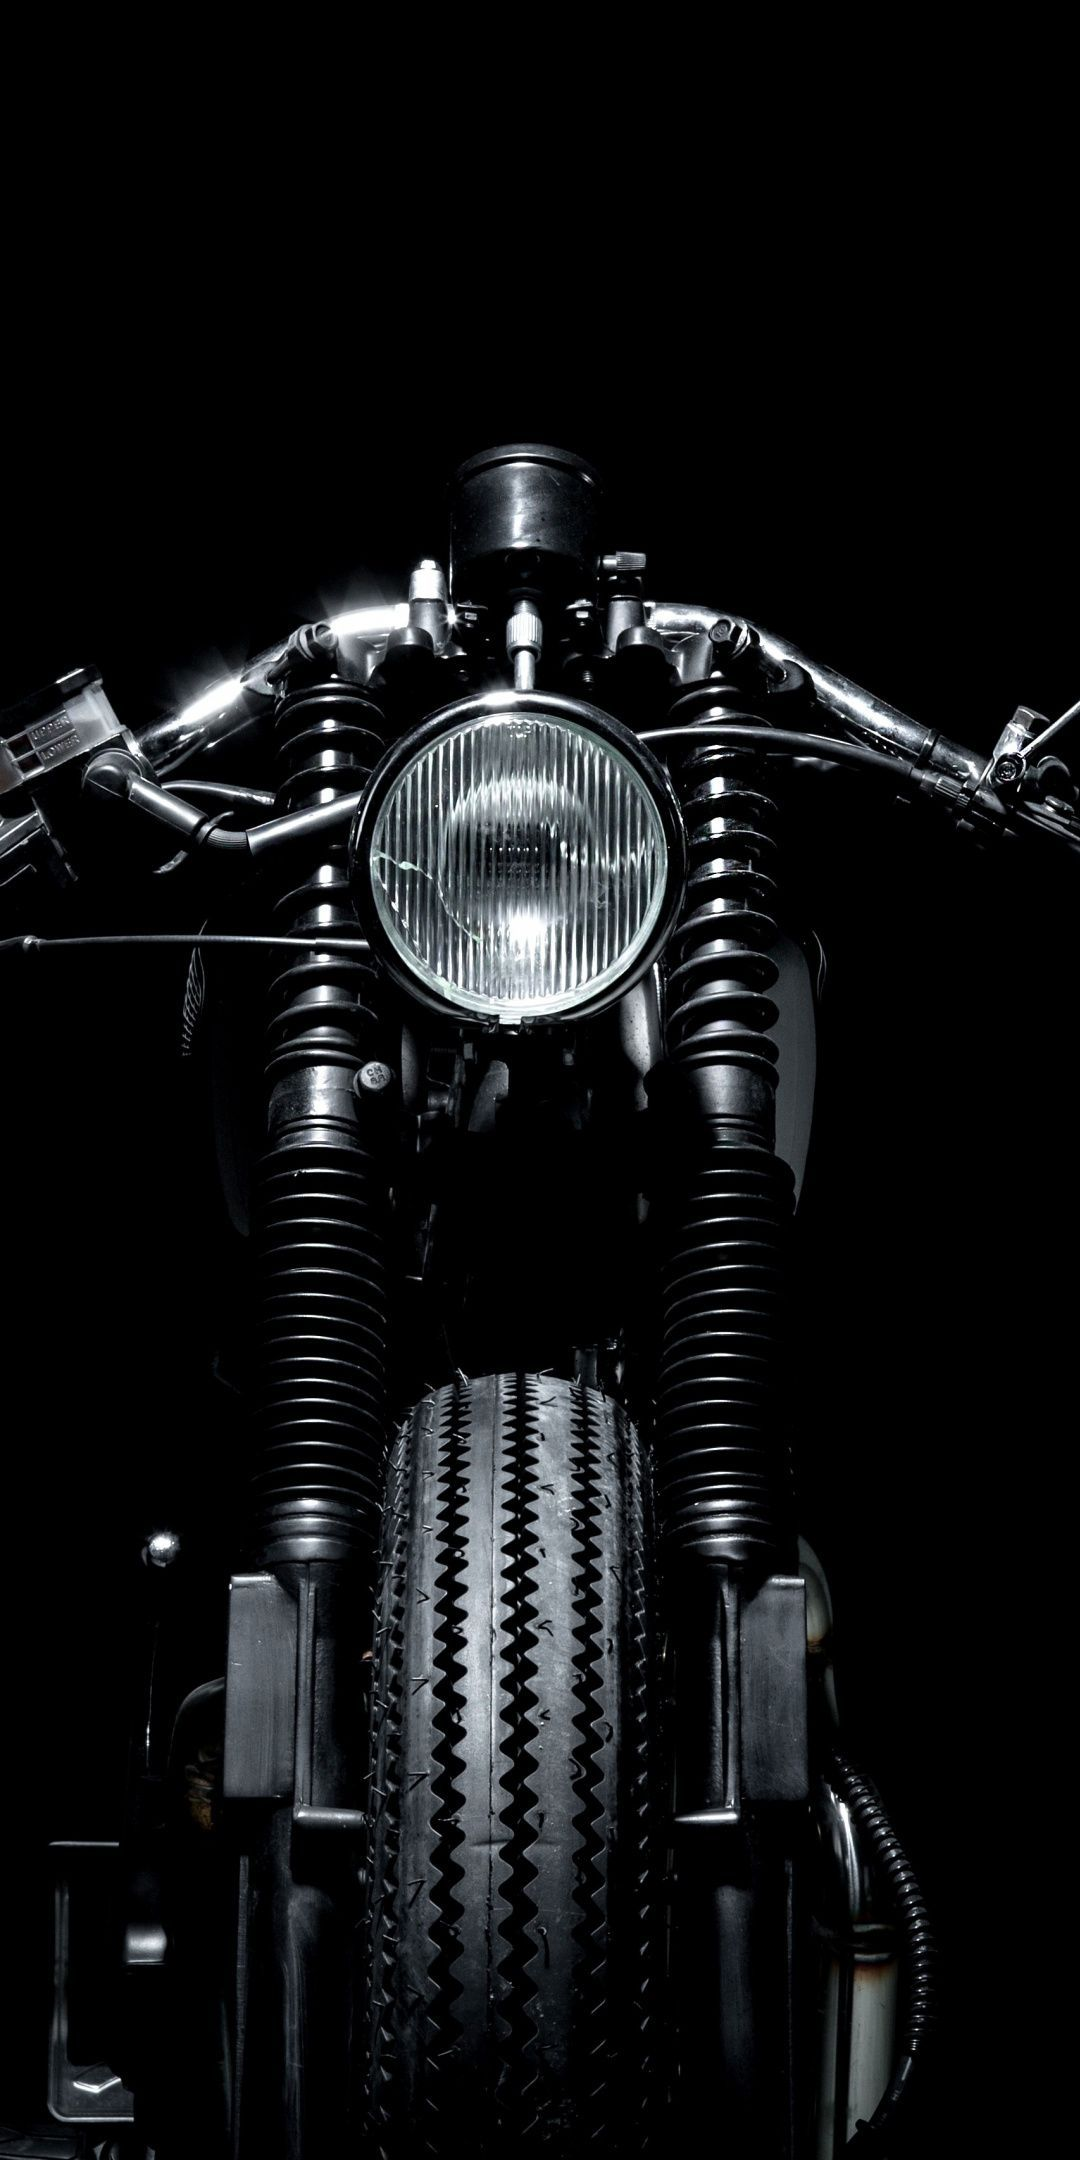 Motorcycle Portrait 1080x2160 Wallpaper In 2020 Motorcycle